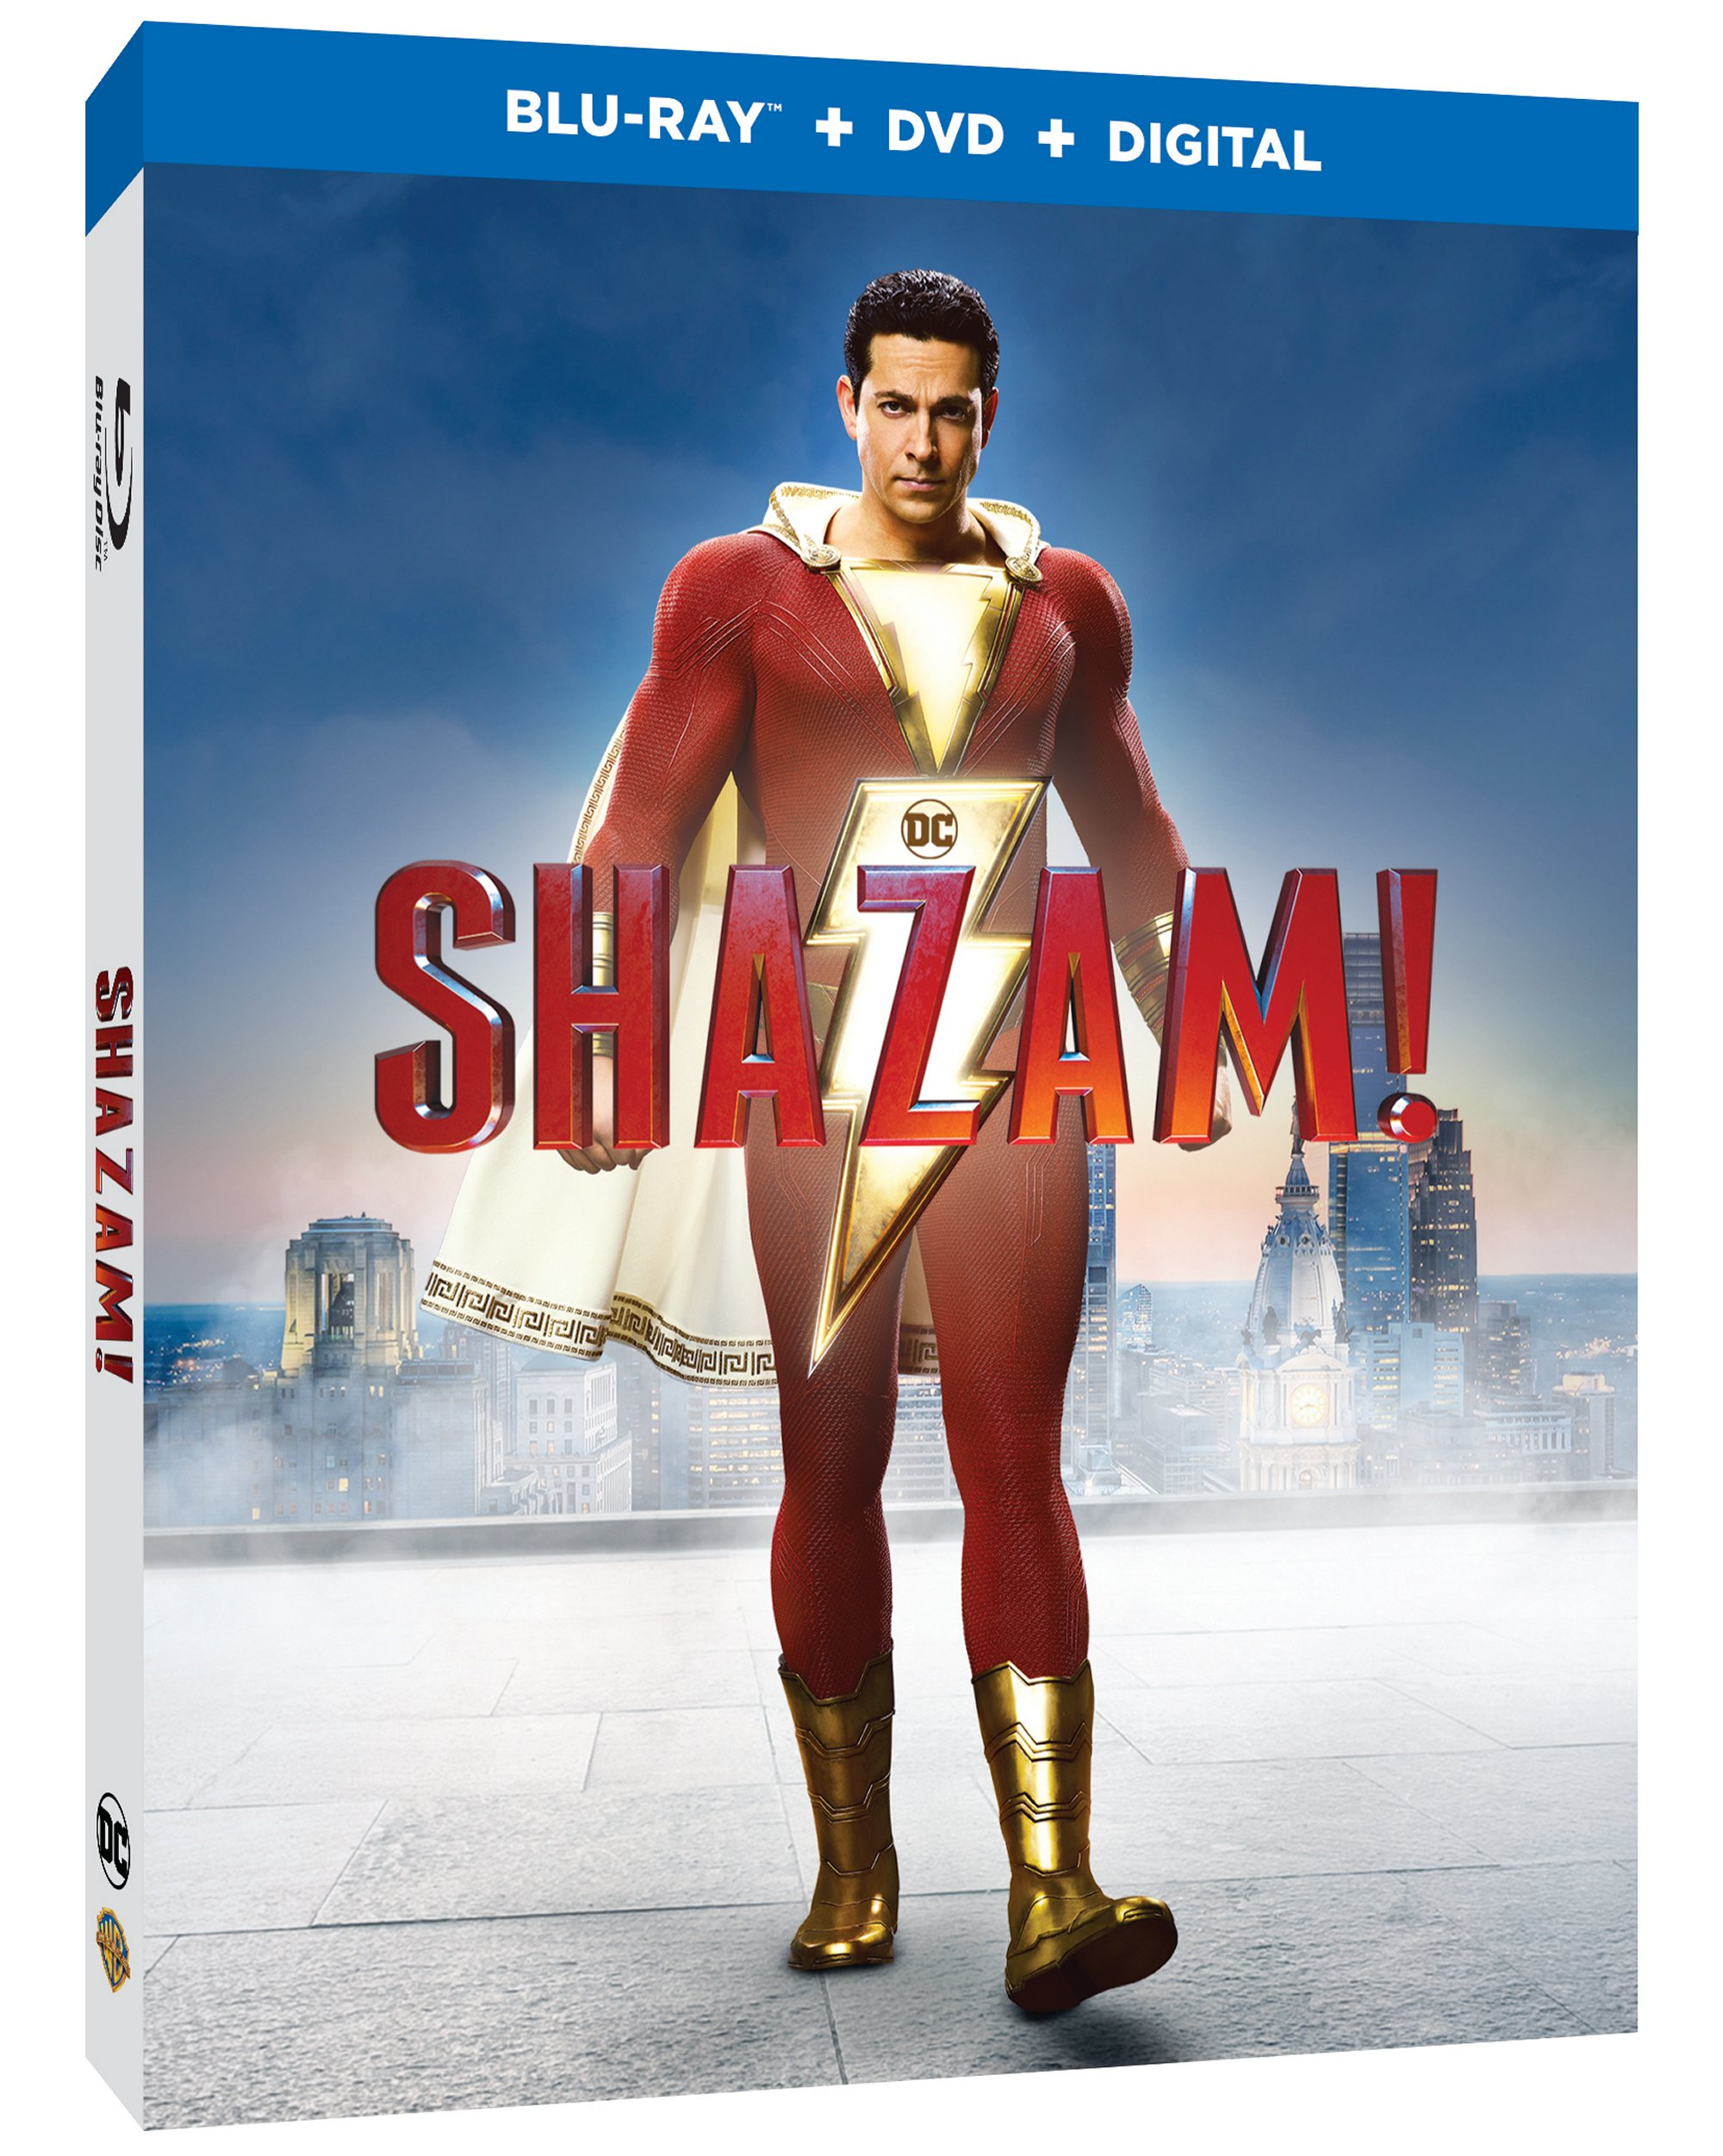 Shazam Blu-ray and digital release dates and details announced